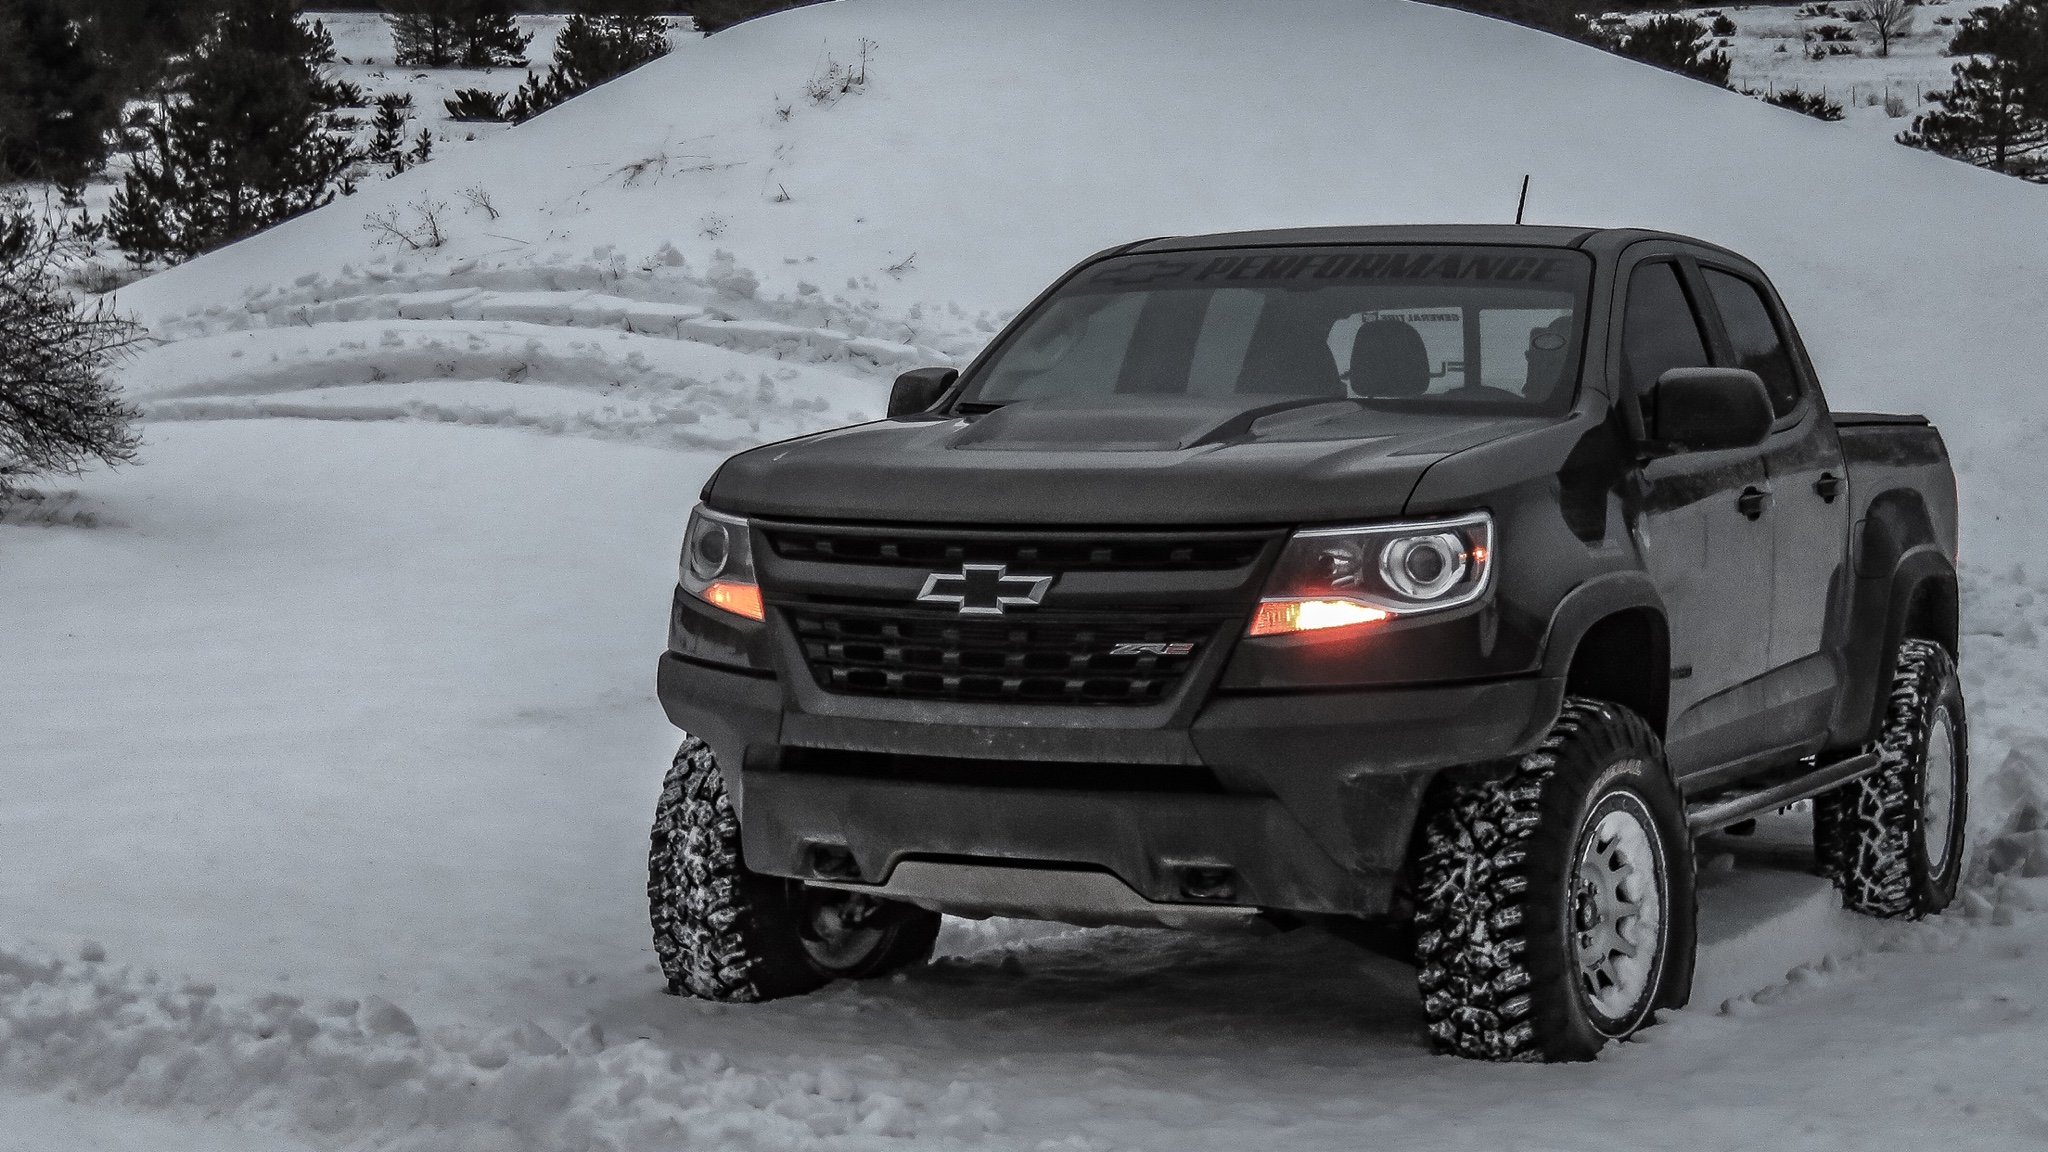 Lifted Chevy Colorado >> G2Skier's ZR2 (pic heavy) Build Thread - Page 22 - Chevy ...